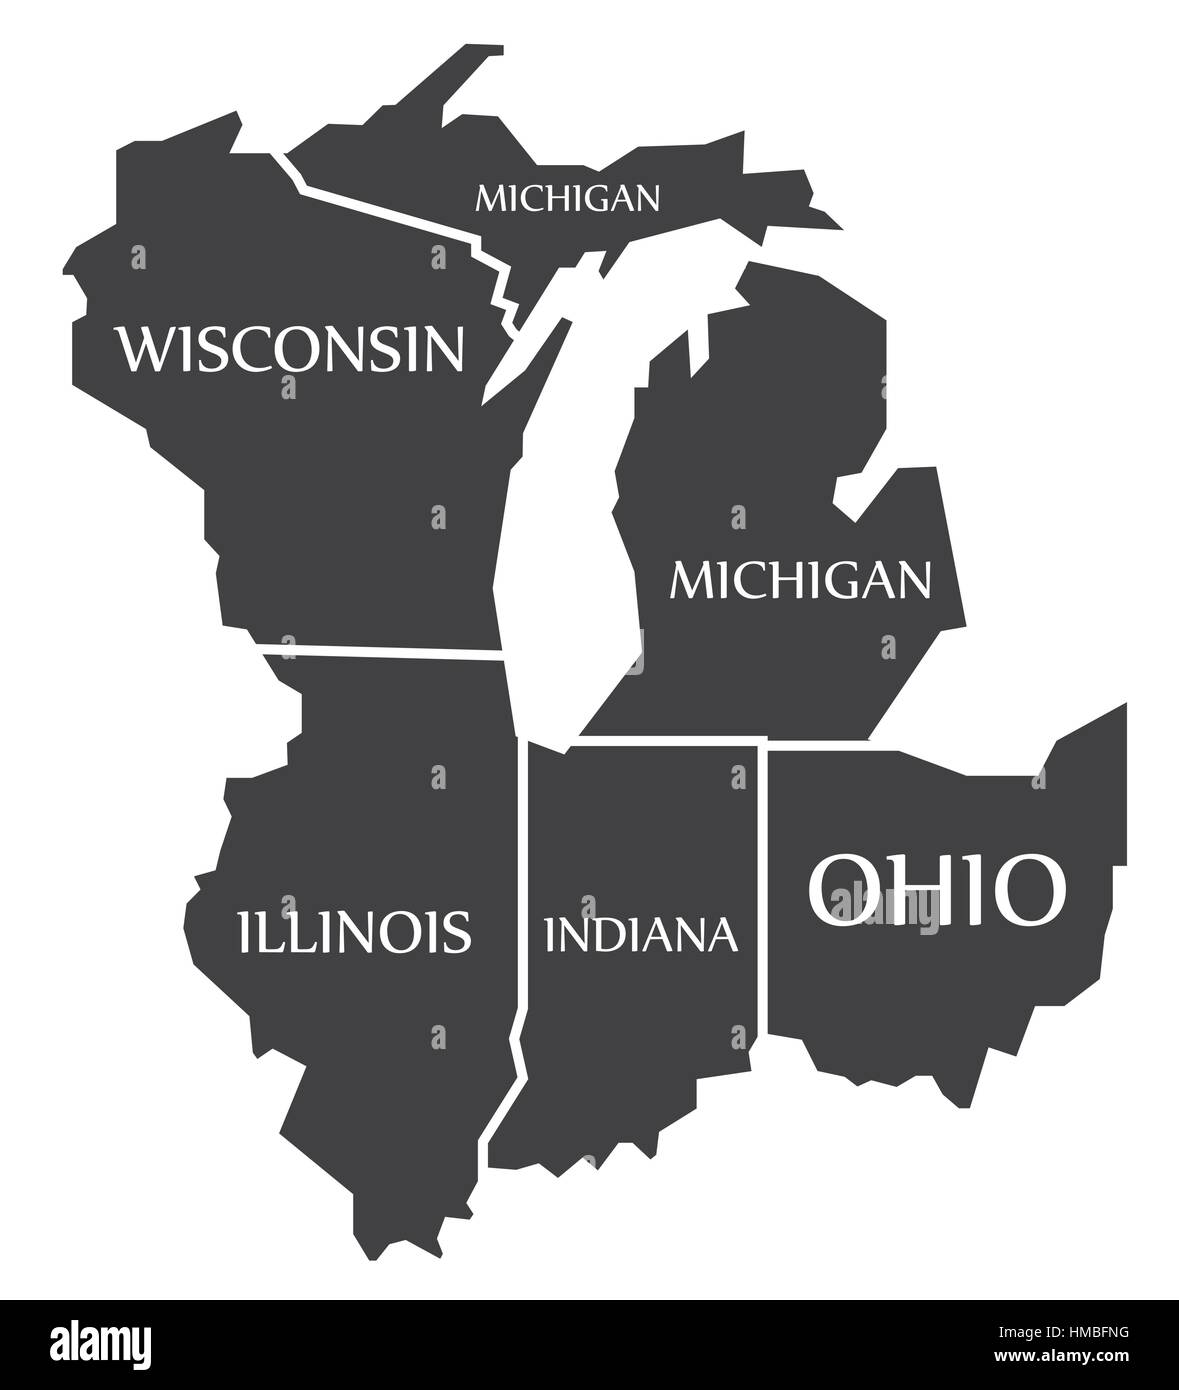 Michigan - Wisconsin - Illinois - Indiana - Ohio Map labelled black ...